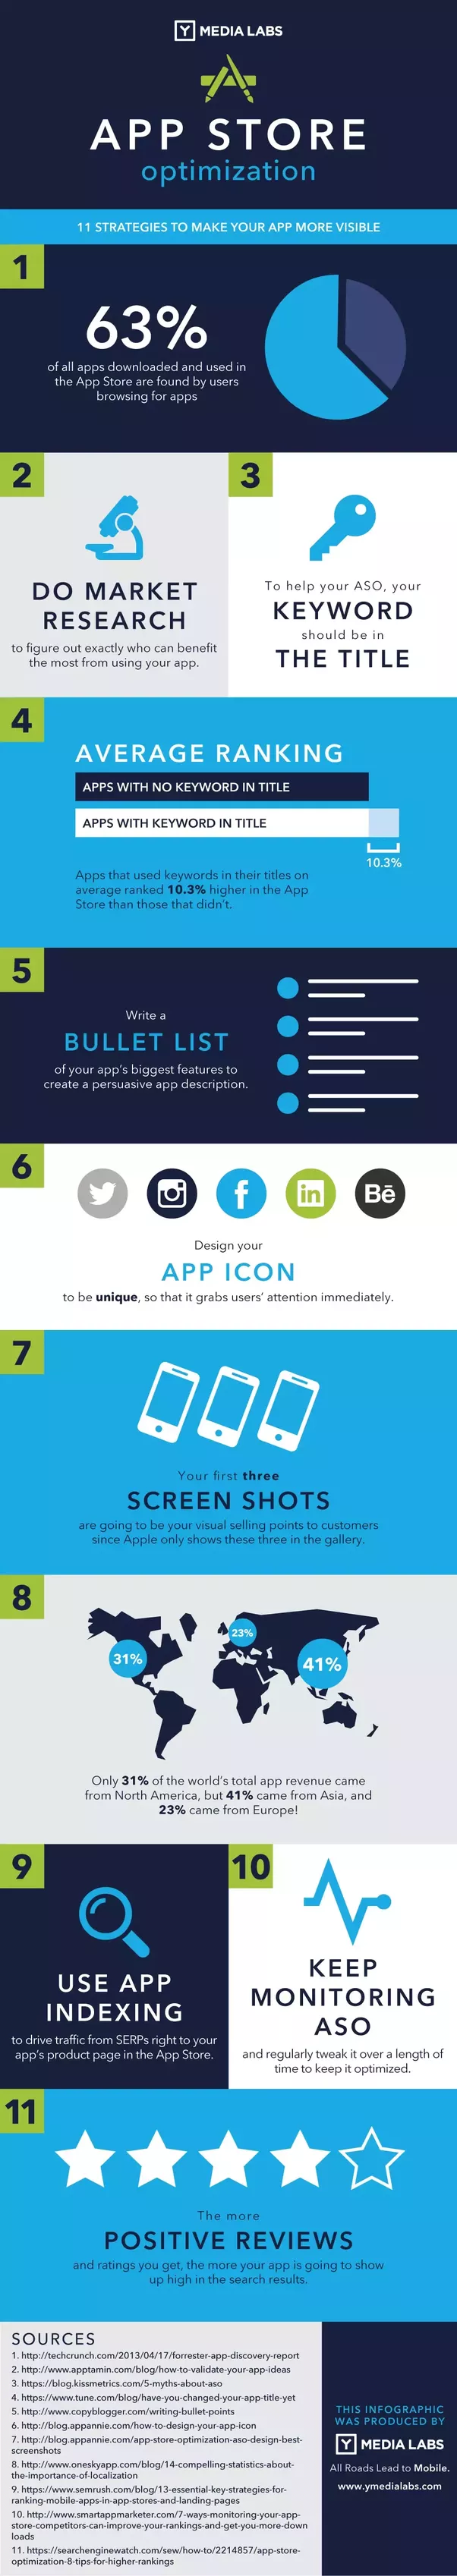 What are the best ways to promote a new mobile app with no budget ...